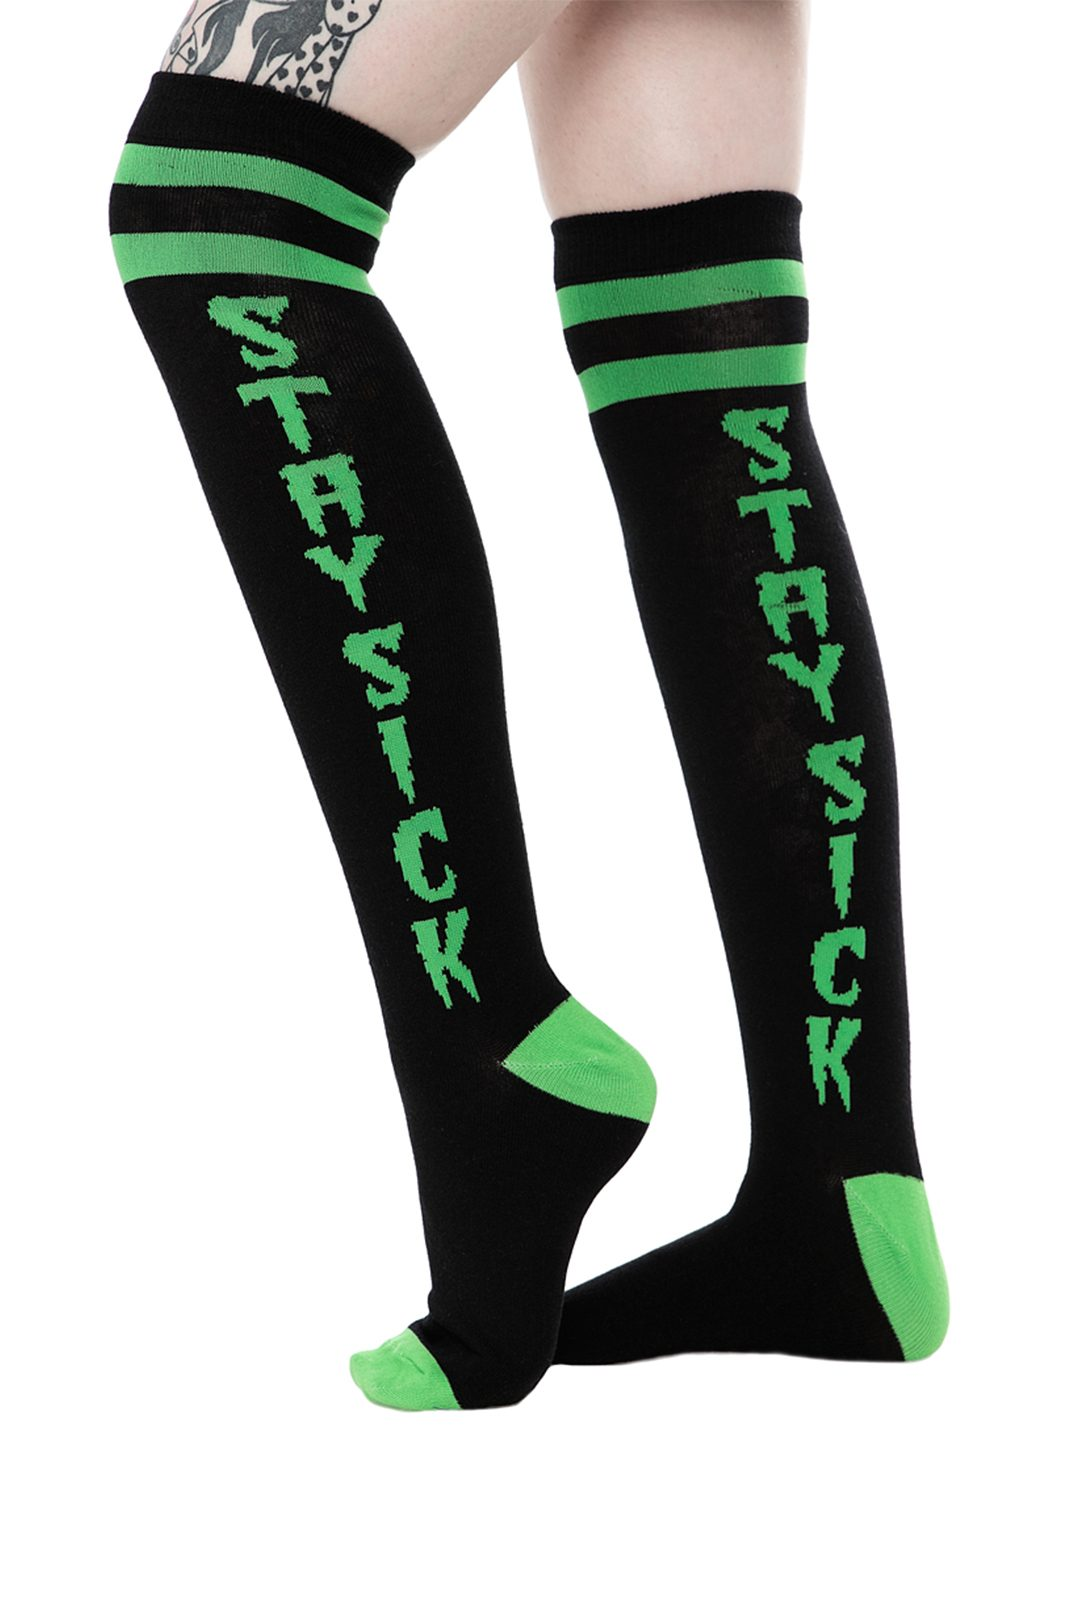 Stay Sick Socks 17""